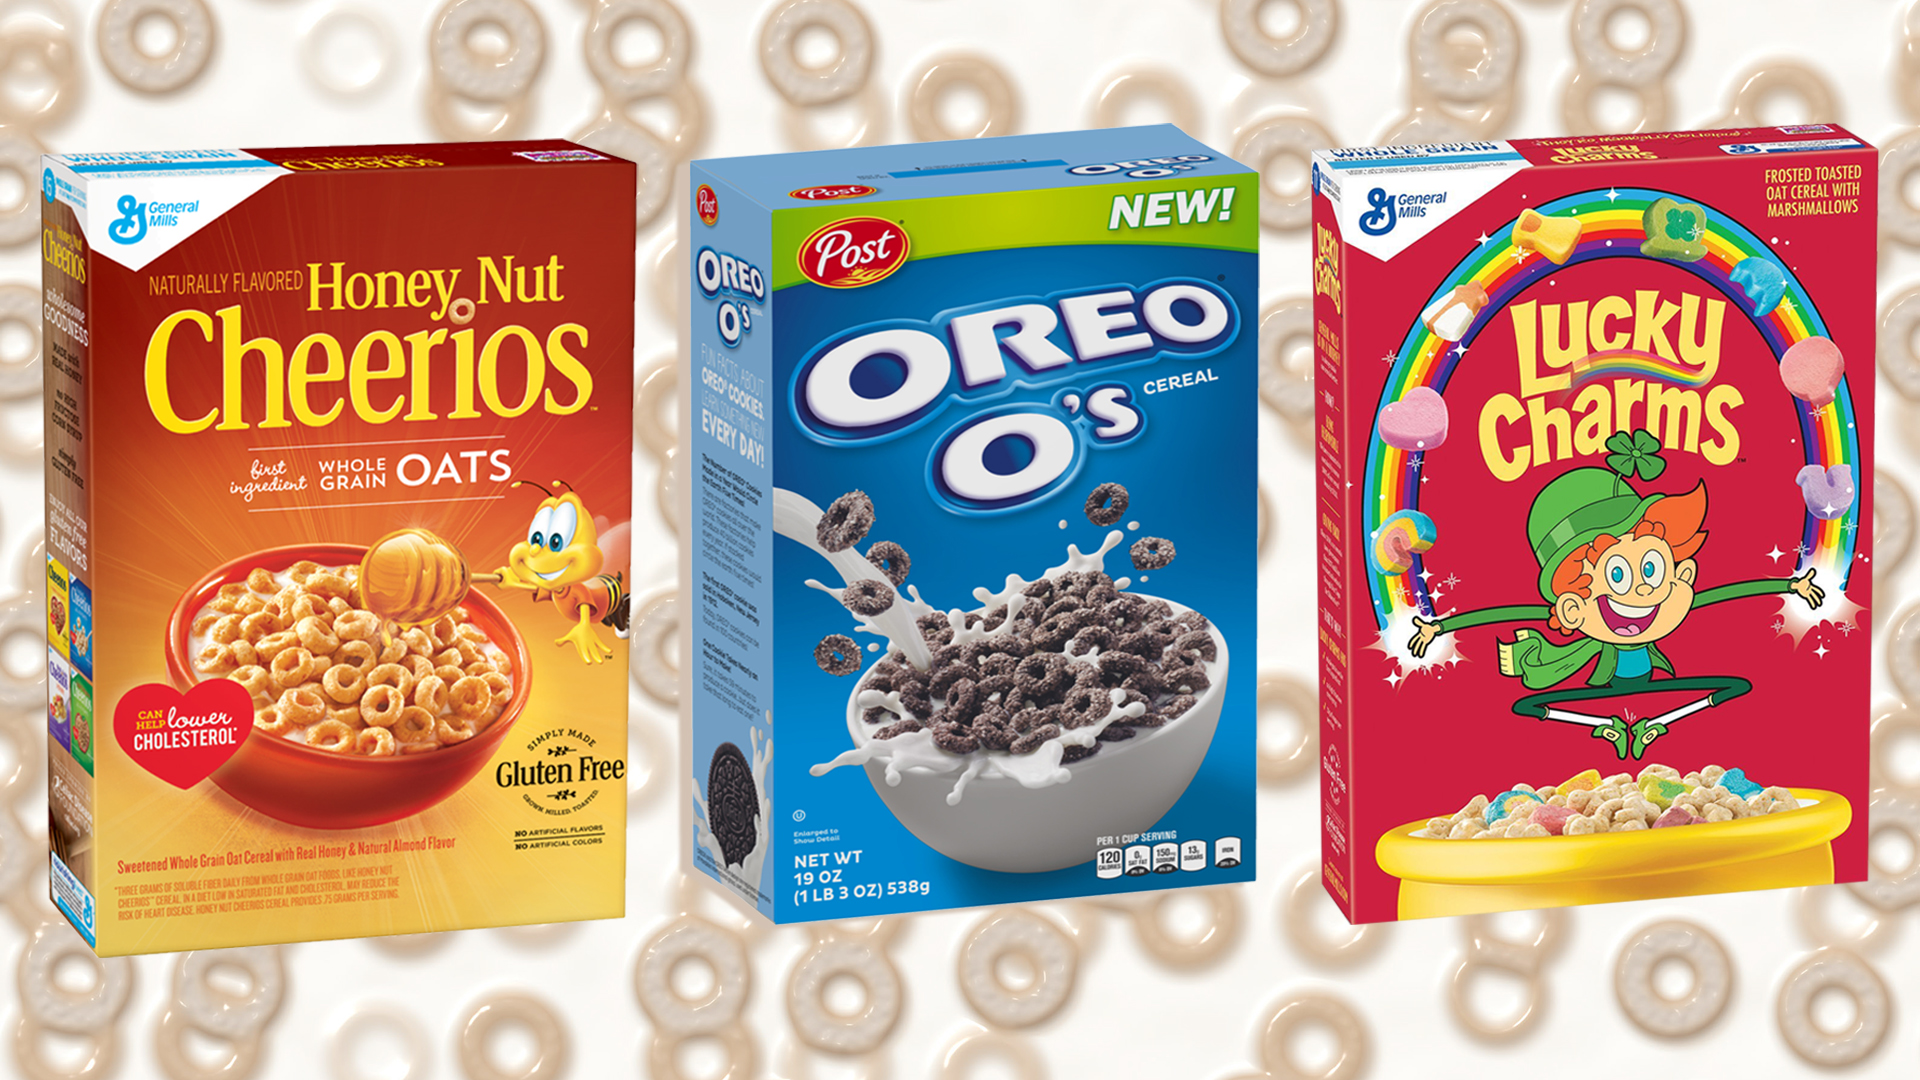 Most Popular Cereal In America, According To Google